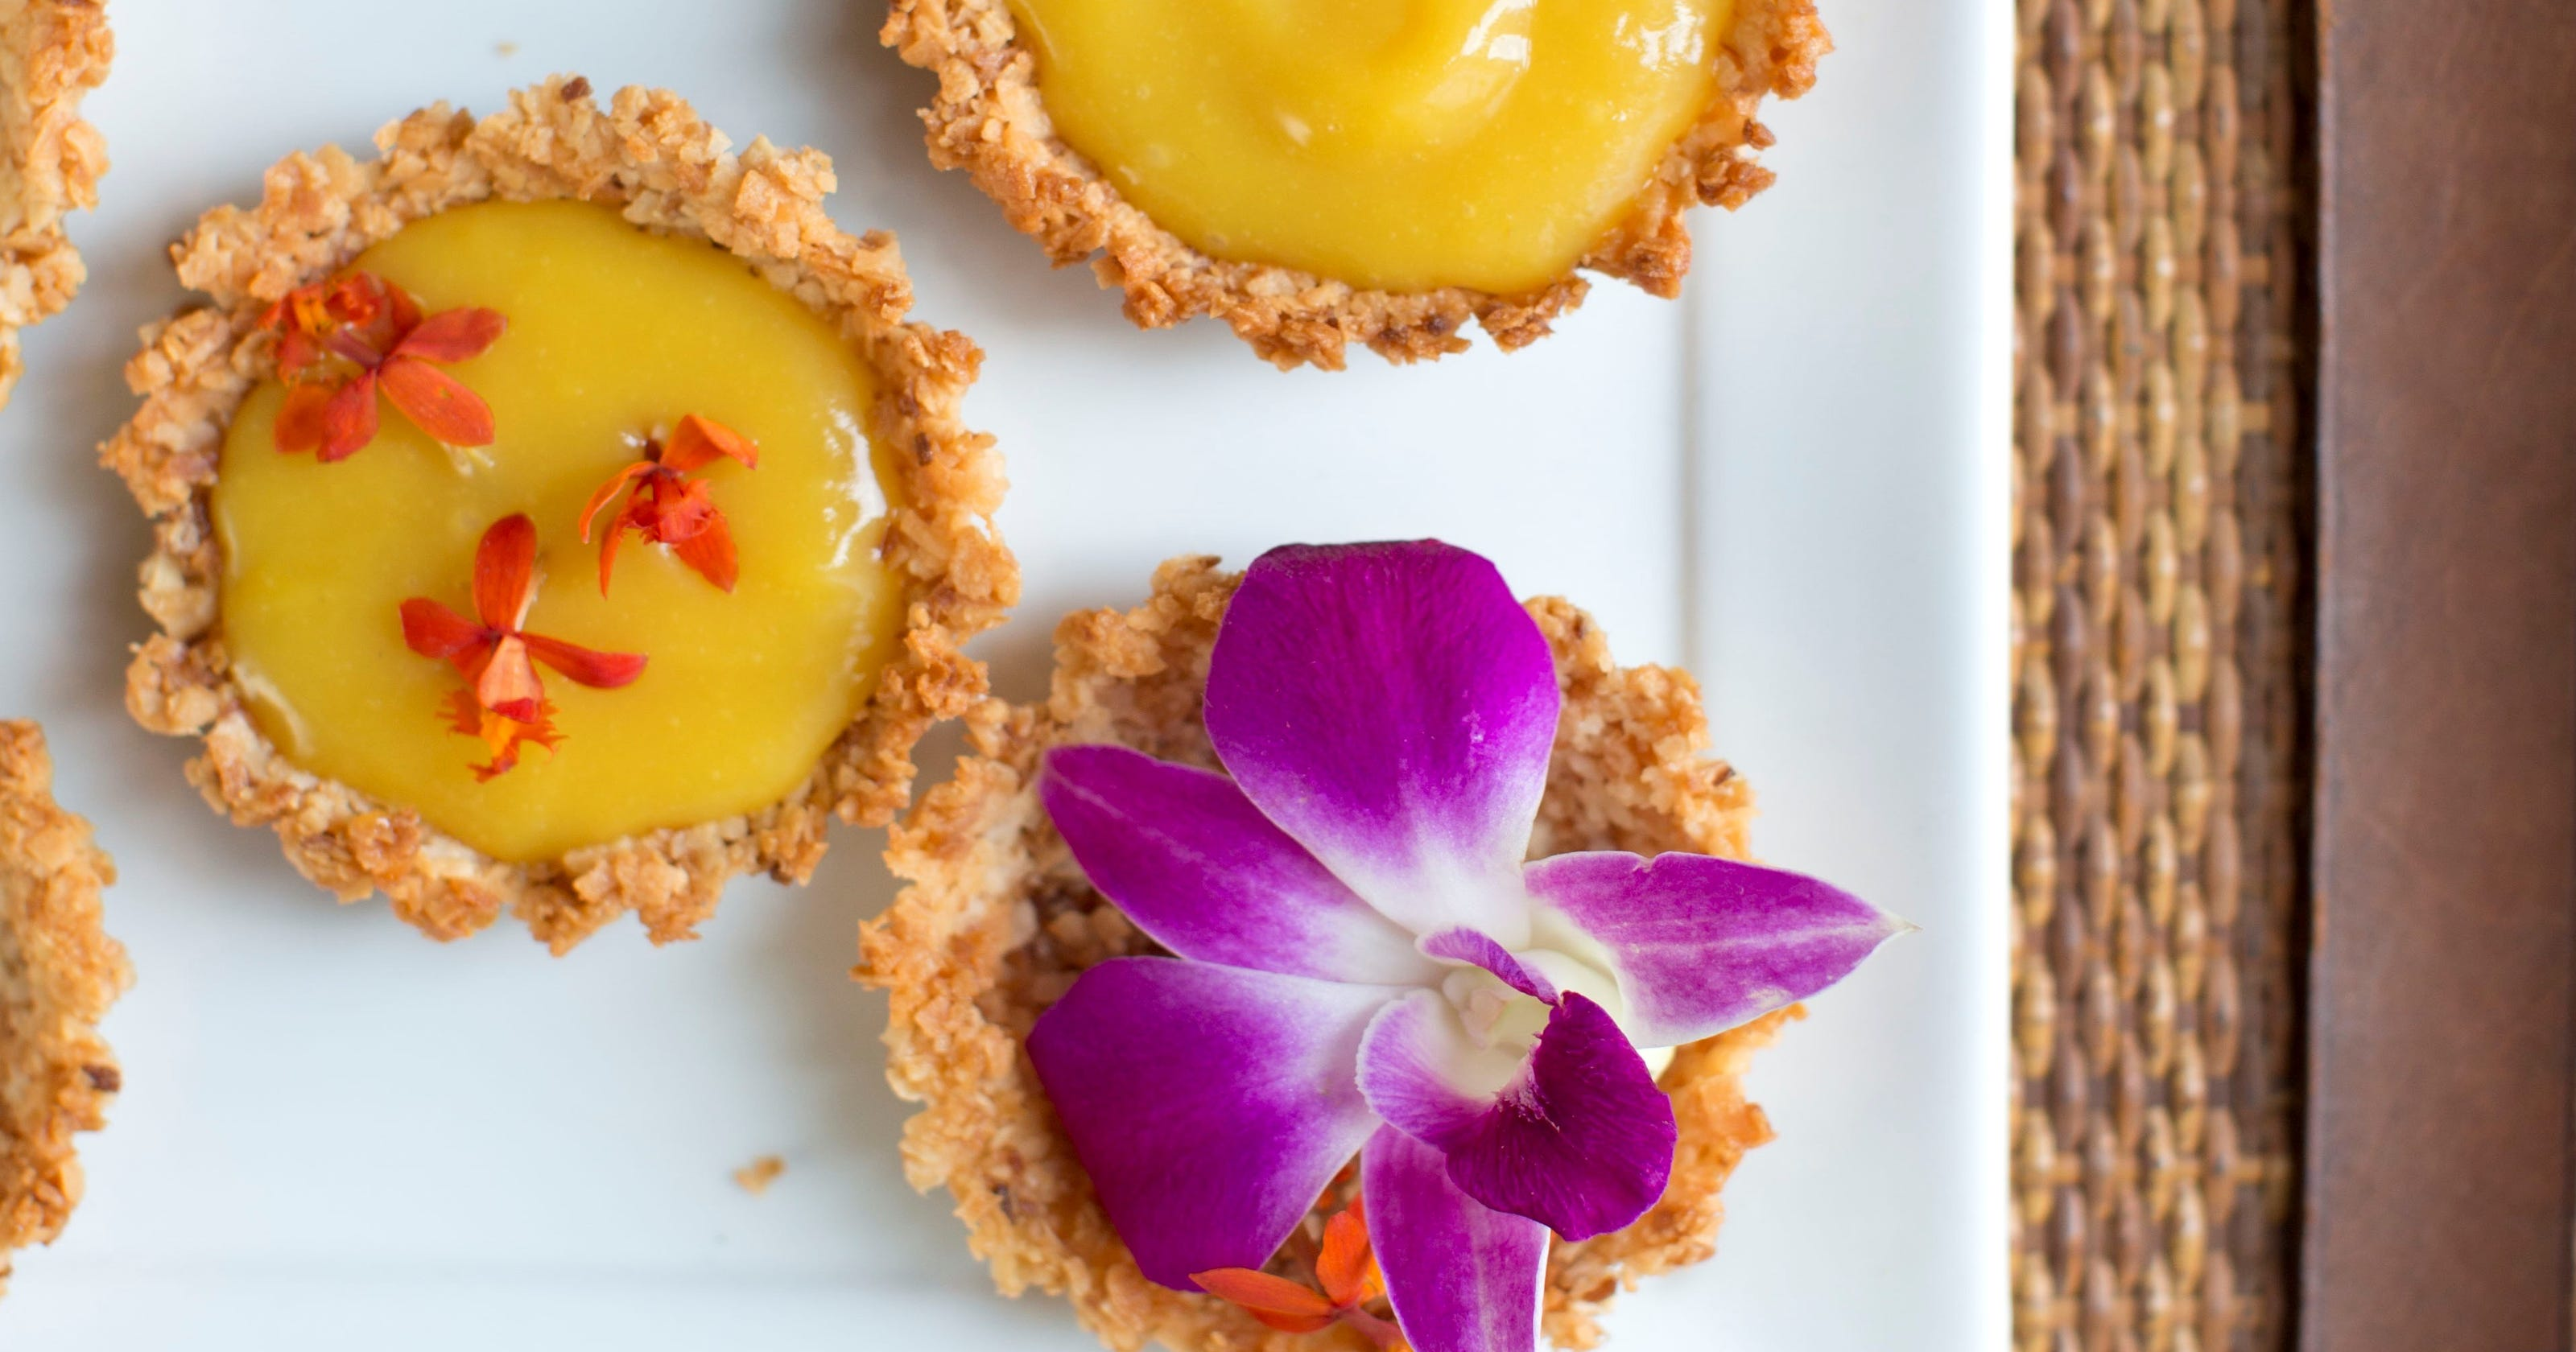 Edible Flowers How To Use Them In Sweet Savory Dishes Drinks